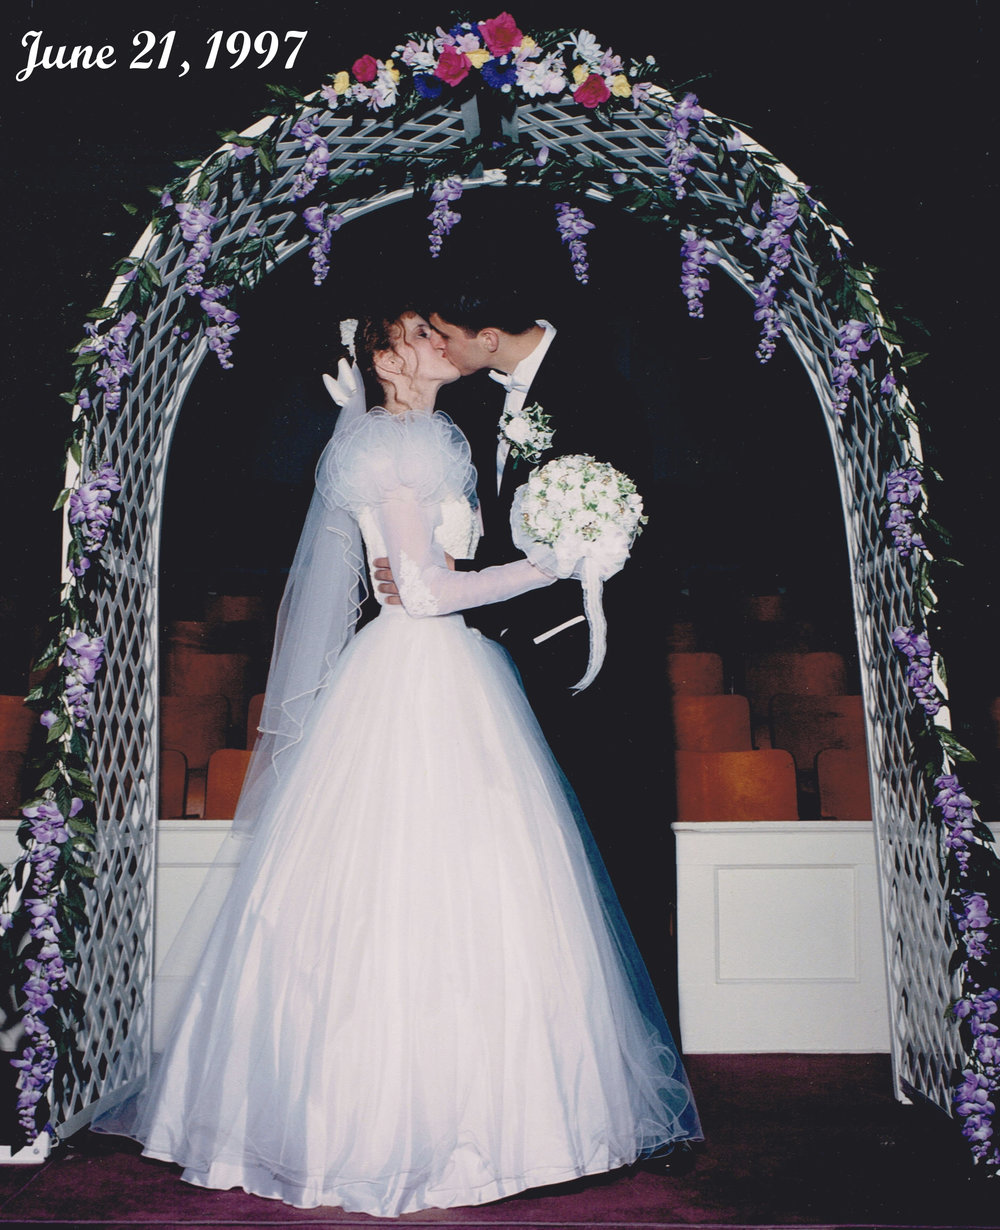 Wedding Day - June 21, 1997